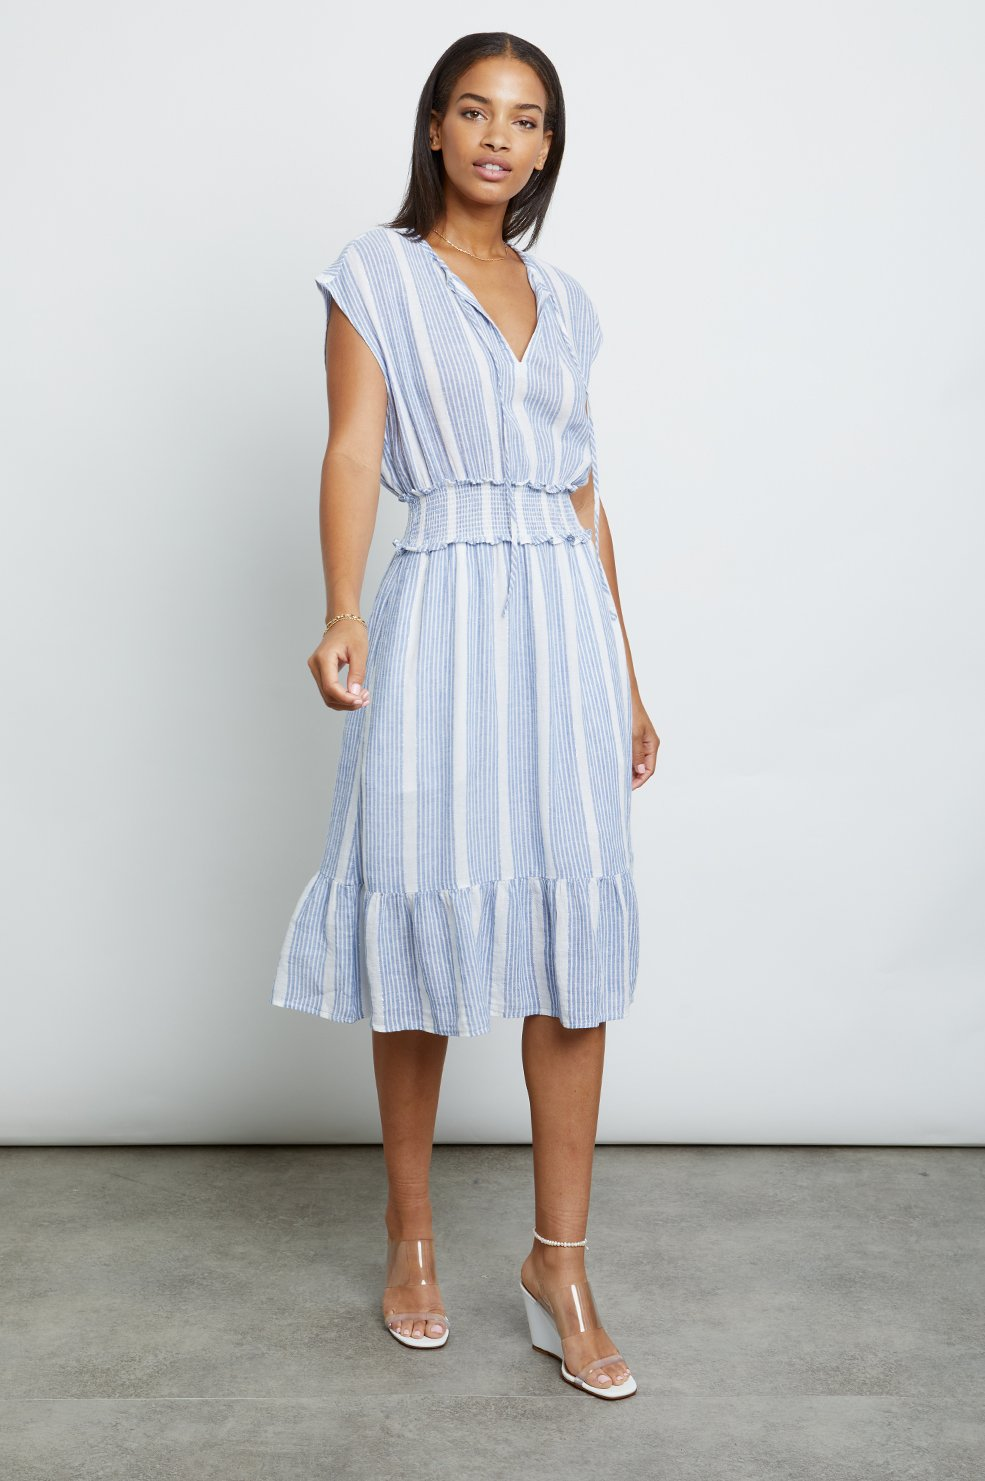 RAILS CLOTHING - Ashlyn Levanzo Stripe Dress online at PAYA boutique